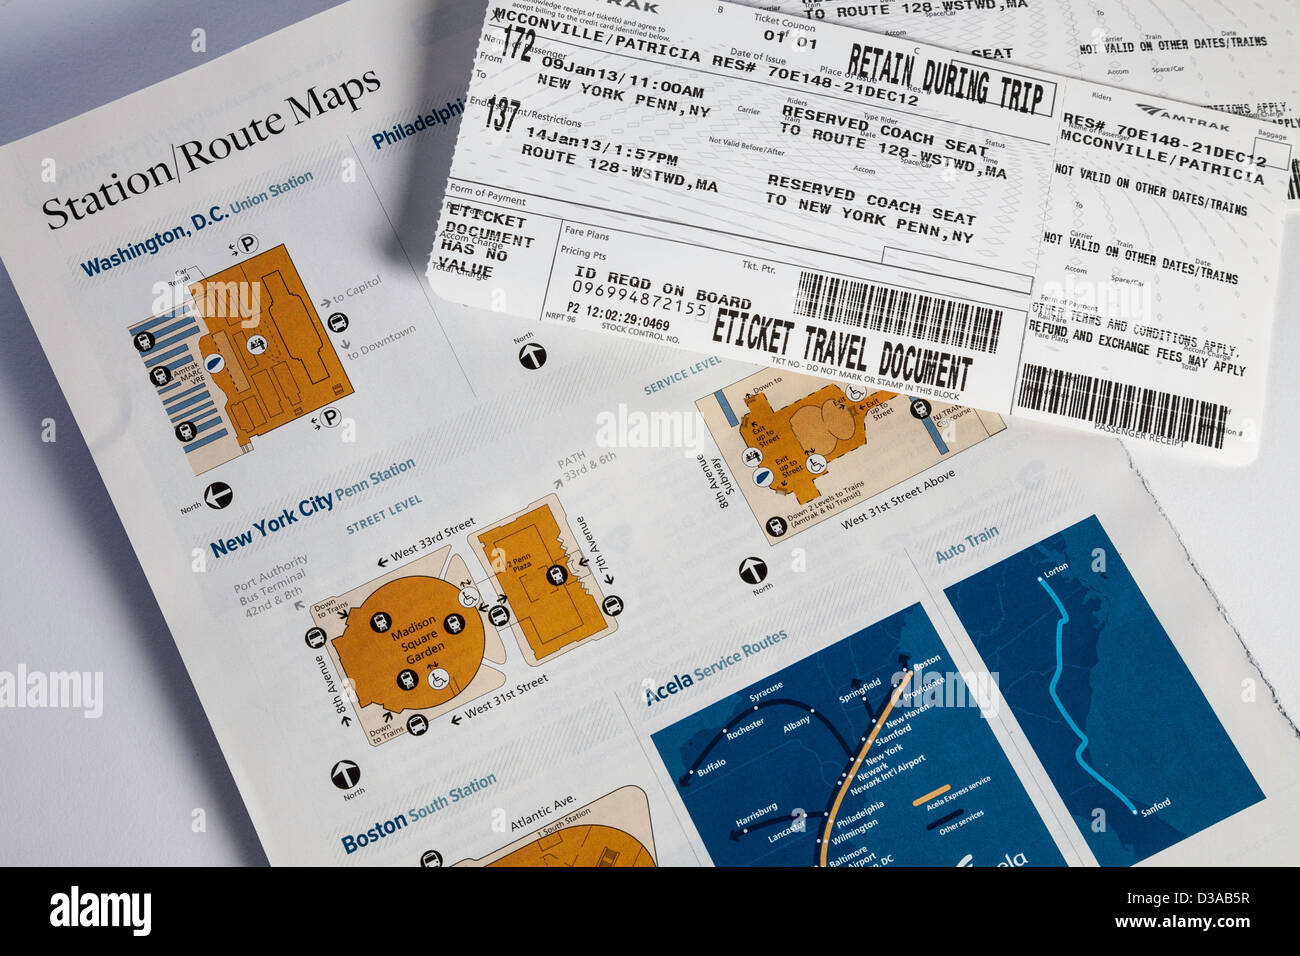 Amtrak Train Tickets and Route Maps USA Stock Photo 53703379 Alamy